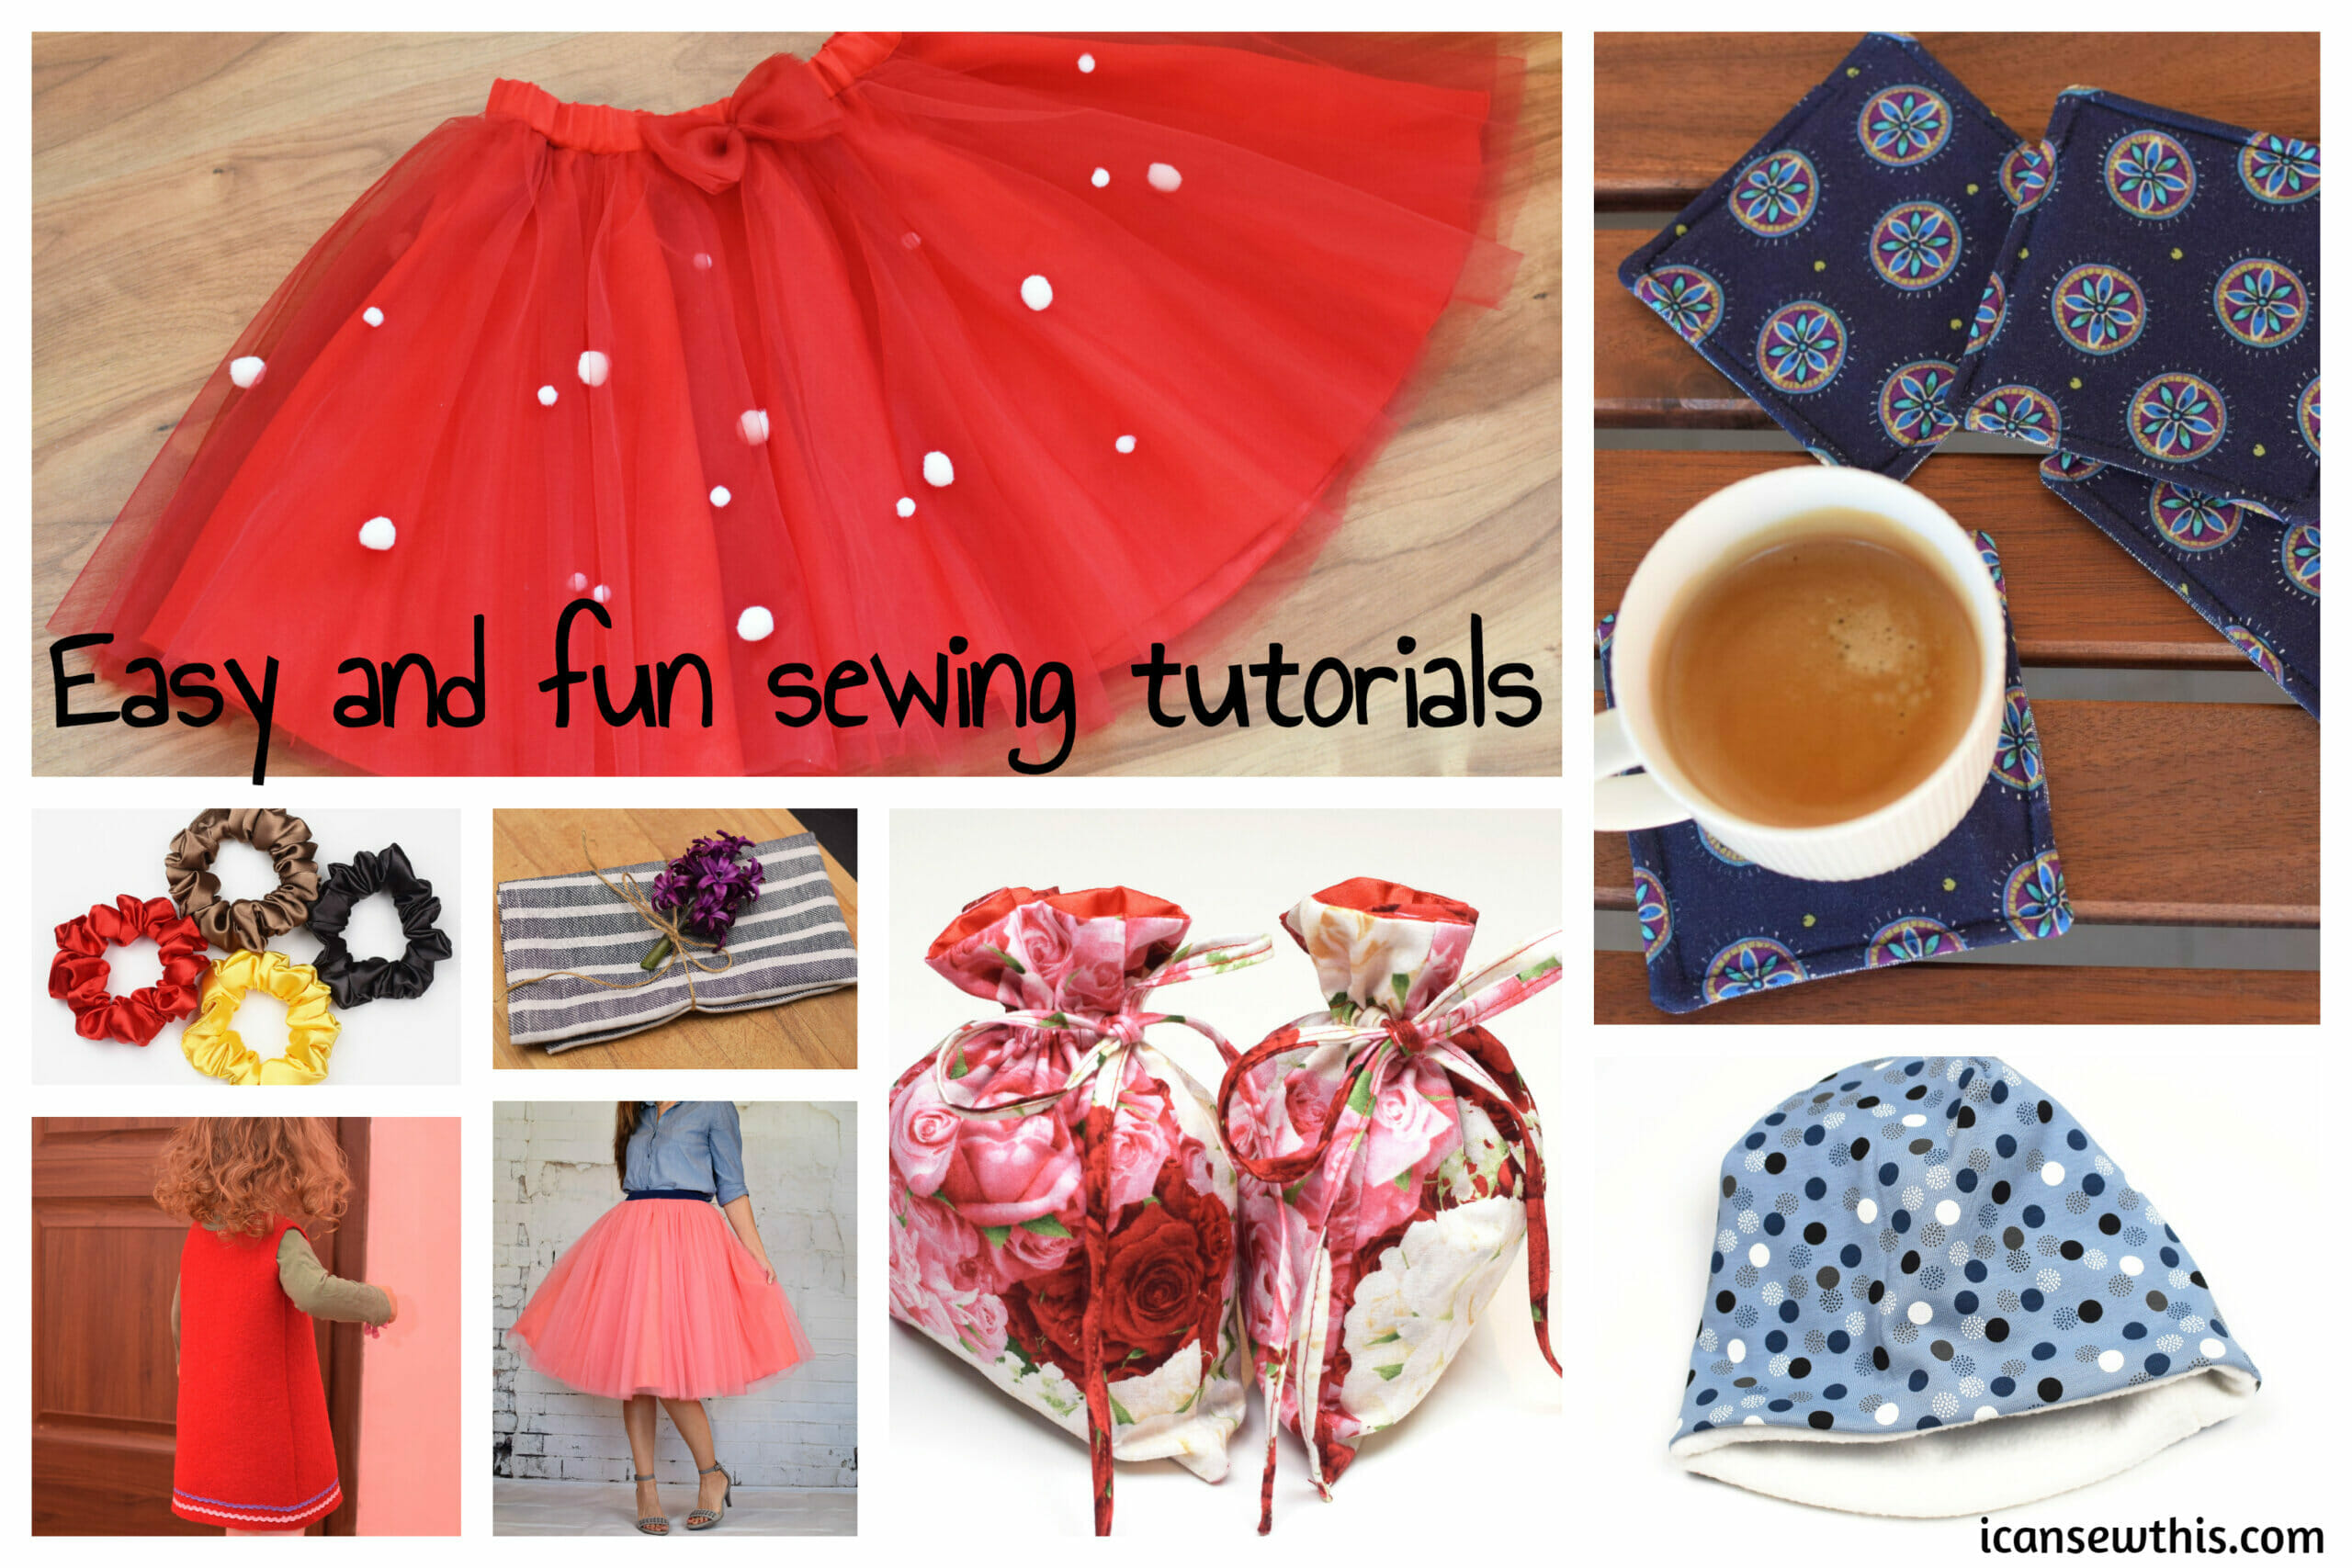 Easy and fun sewing tutorials